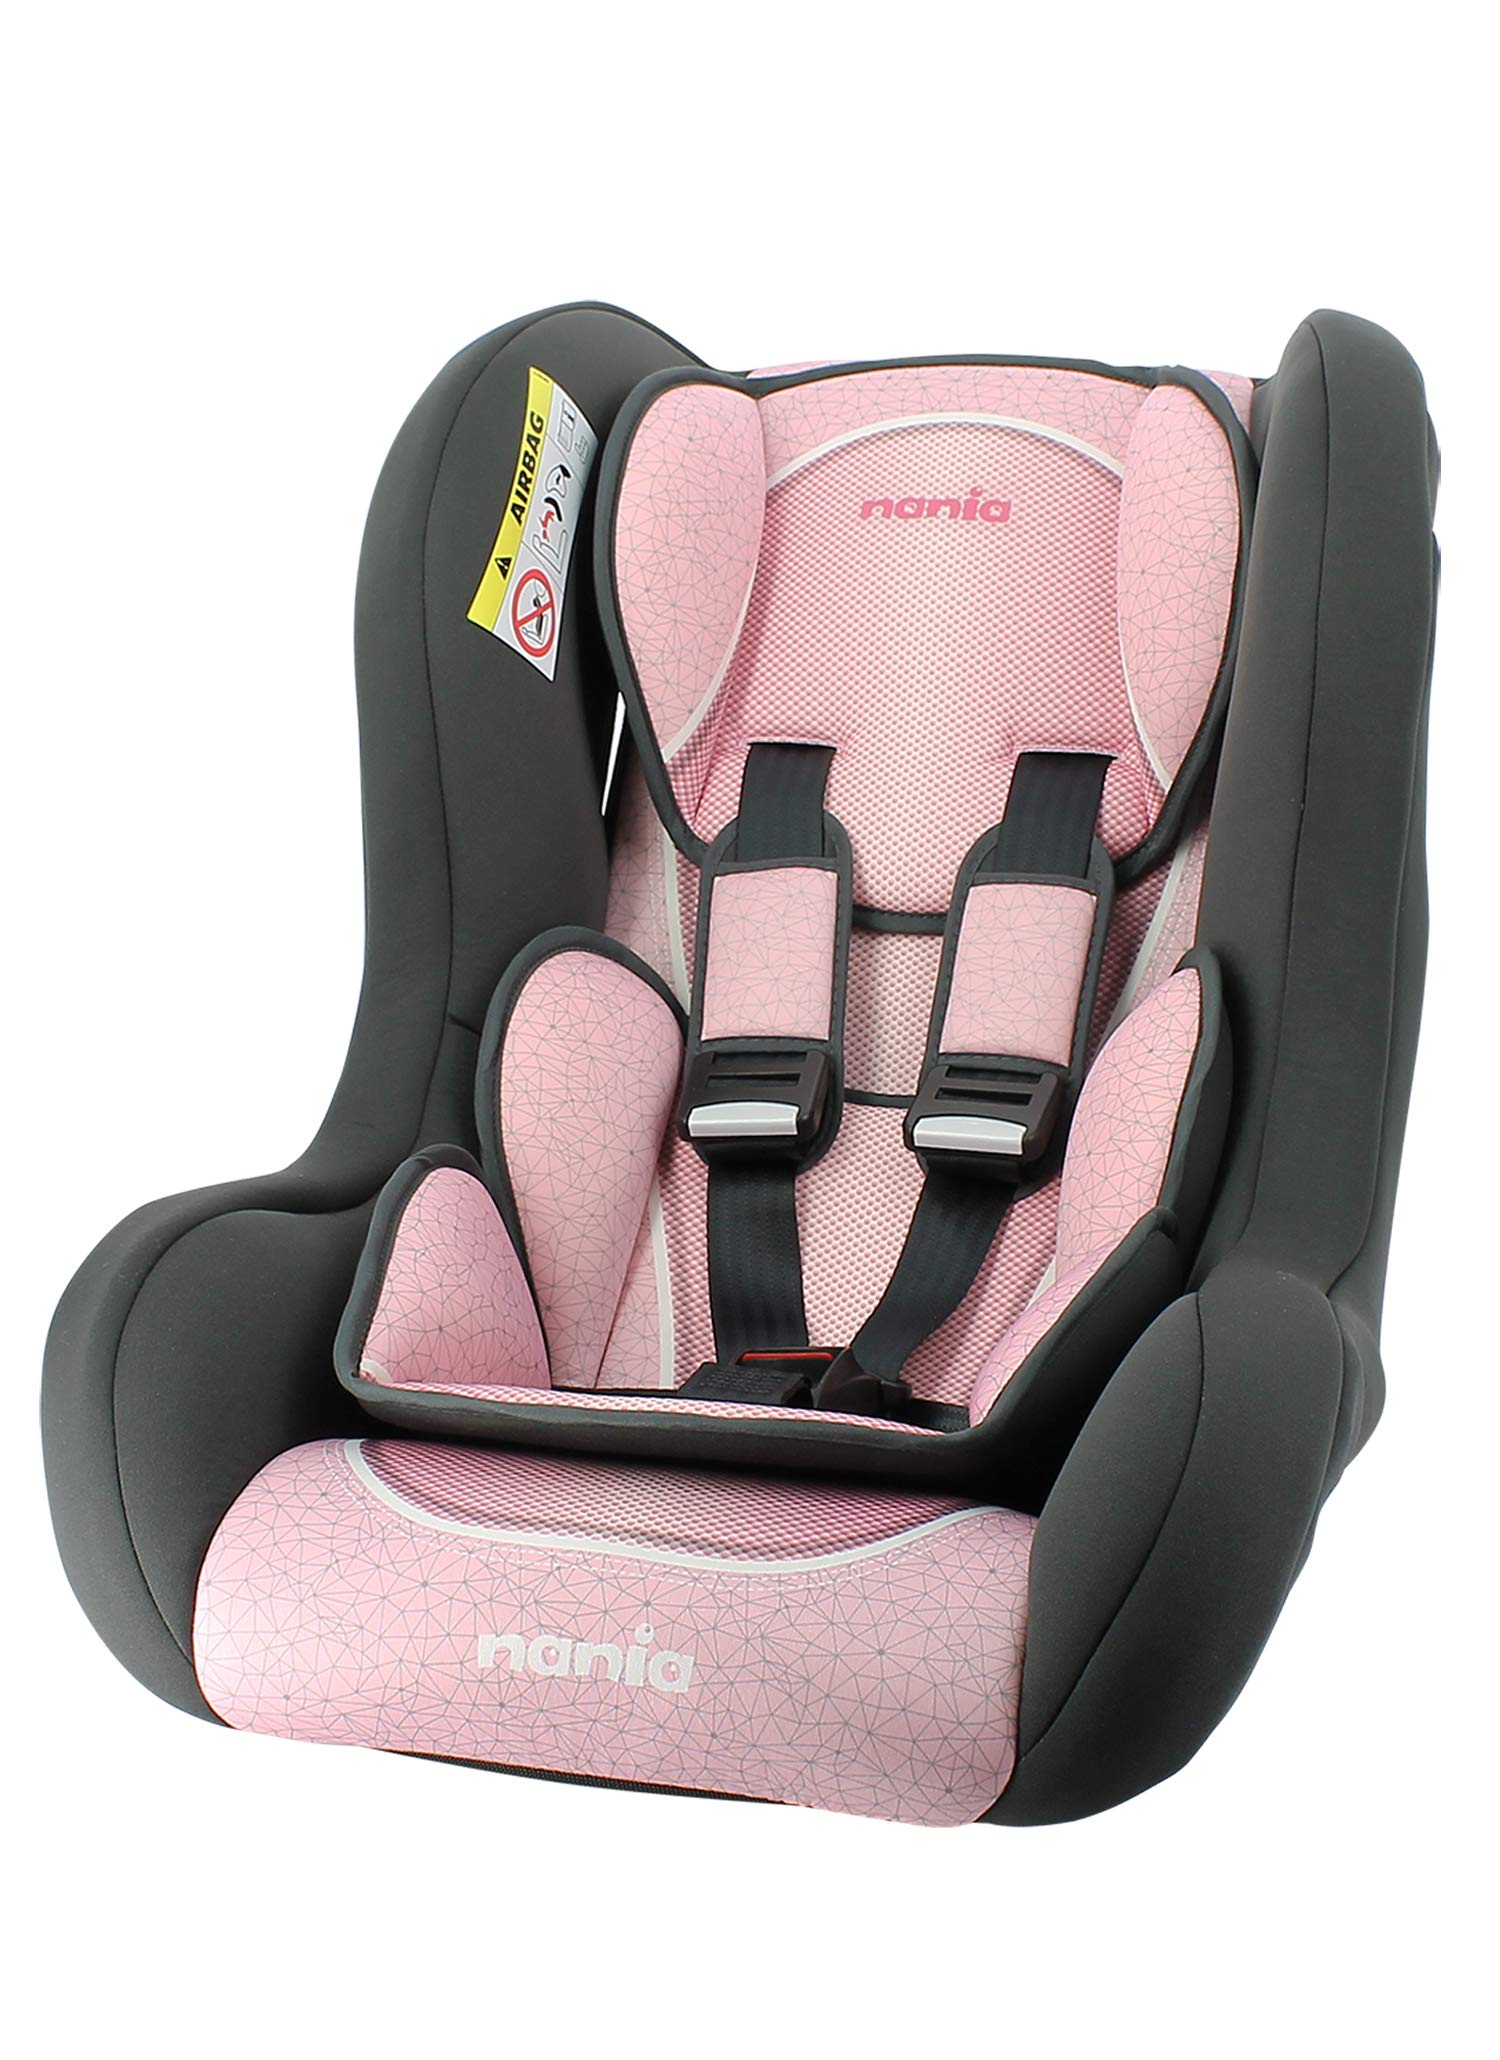 Siège auto Trio Grp 0/1/2 Nania Skyline rose nania Group 0/1/2 TRIO car seat for children from birth to 25kg, approved according to ECE R44/04, manufactured and tested in France. The TRIO car seat is positioned facing the road from 0 to 13kg, then facing the road from 9kg. It is equipped with a 5-point harness. The car seat is attached to the car with the 3-point seat belt. The headrest is curved for lateral protection in case of impact. 1